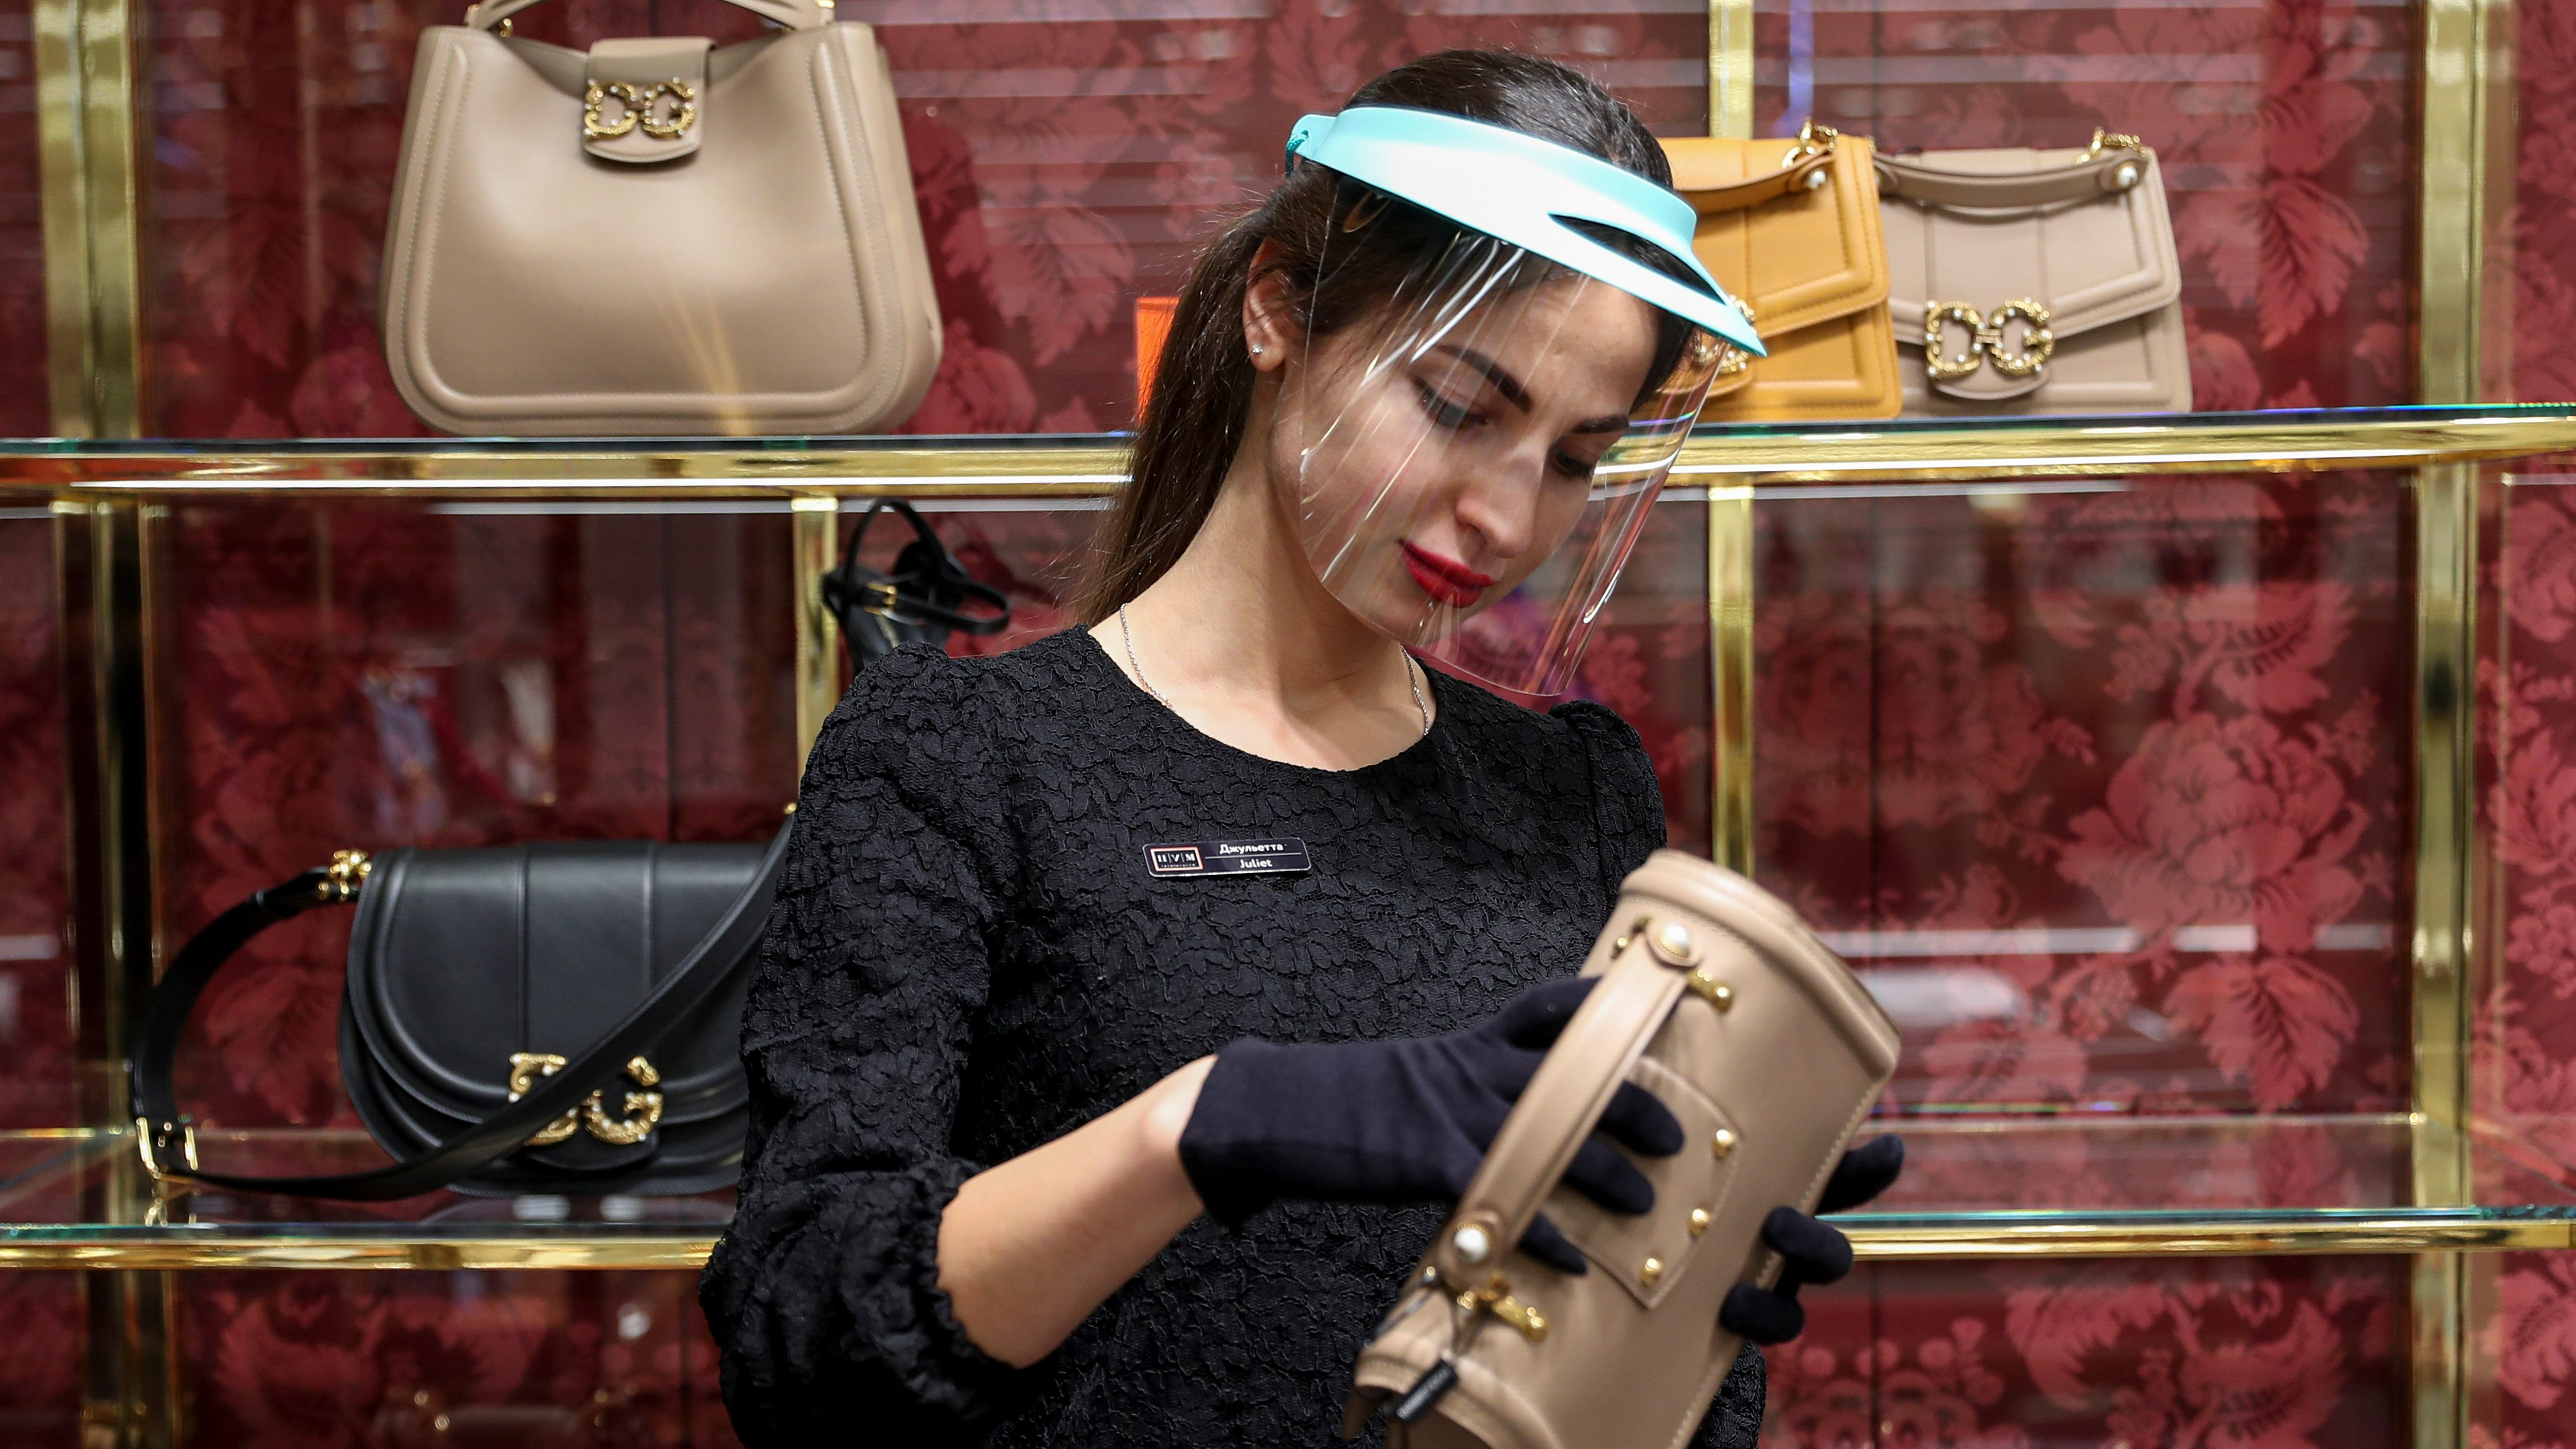 A shop assistant wearing a protective mask, used as a preventive measure against coronavirus disease (COVID-19), stands near a showcase with handbags